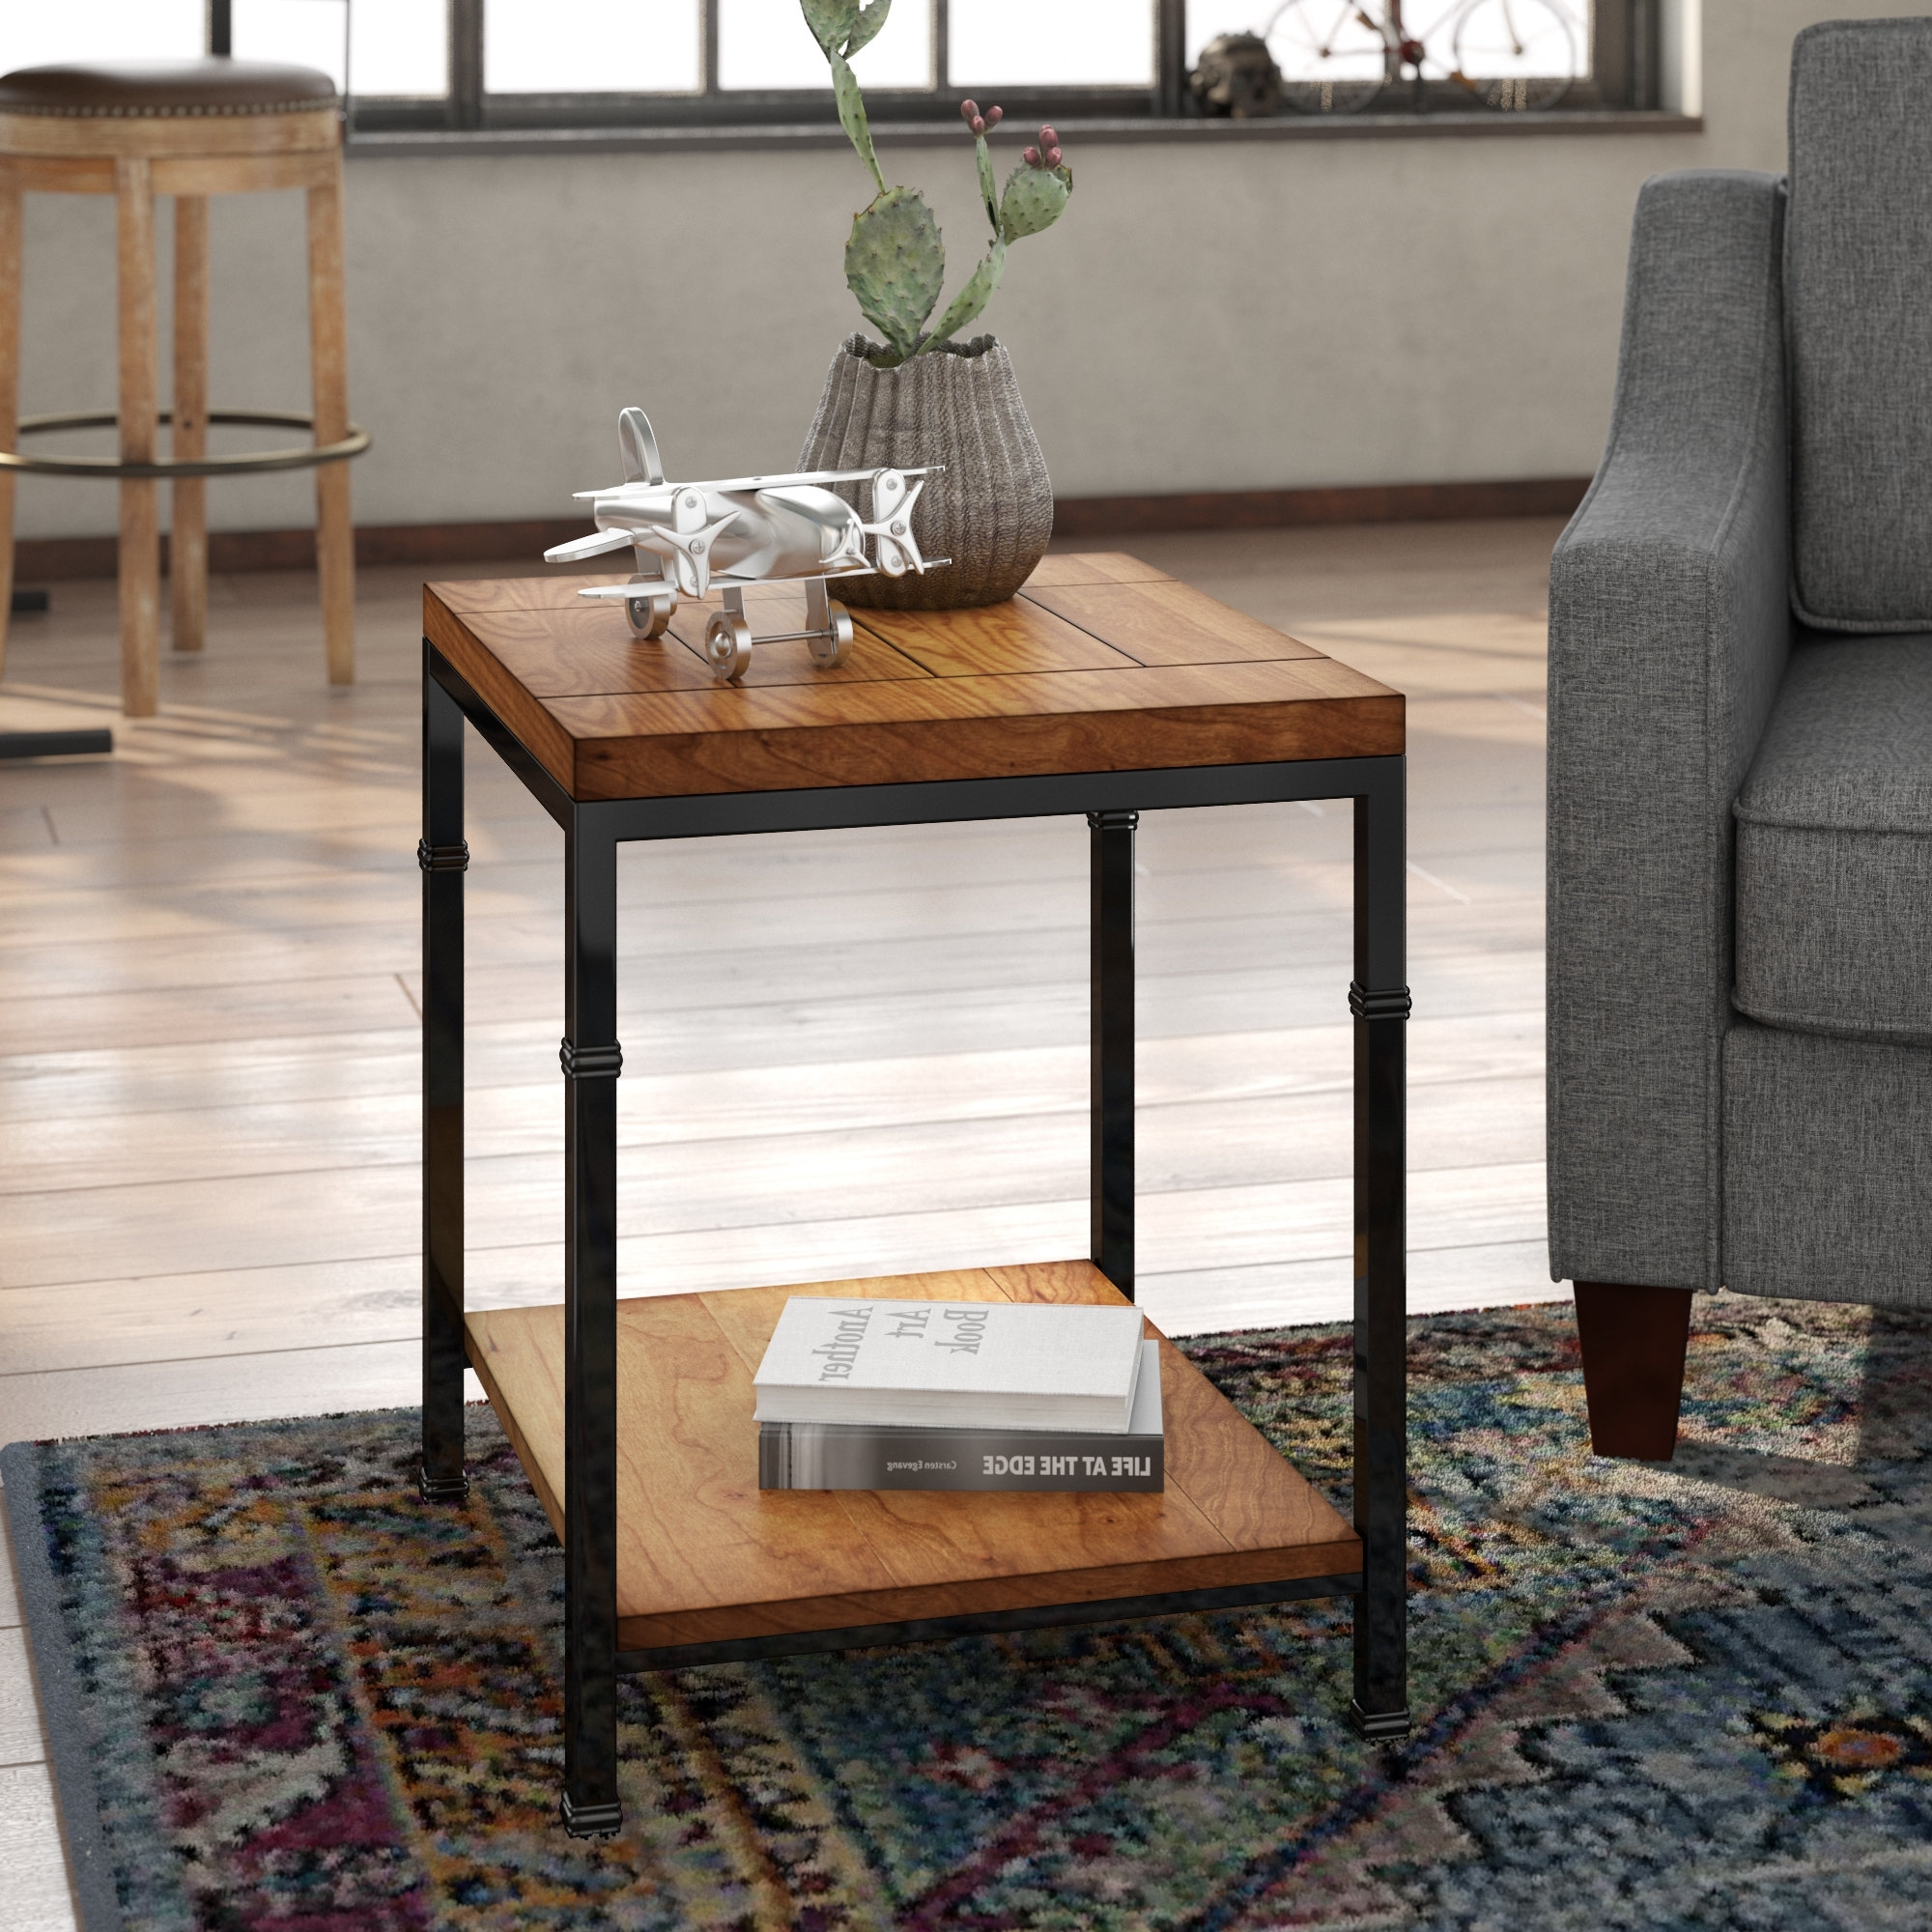 Wayfair Pertaining To Most Recently Released Large Scale Chinese Farmhouse Coffee Tables (View 16 of 20)